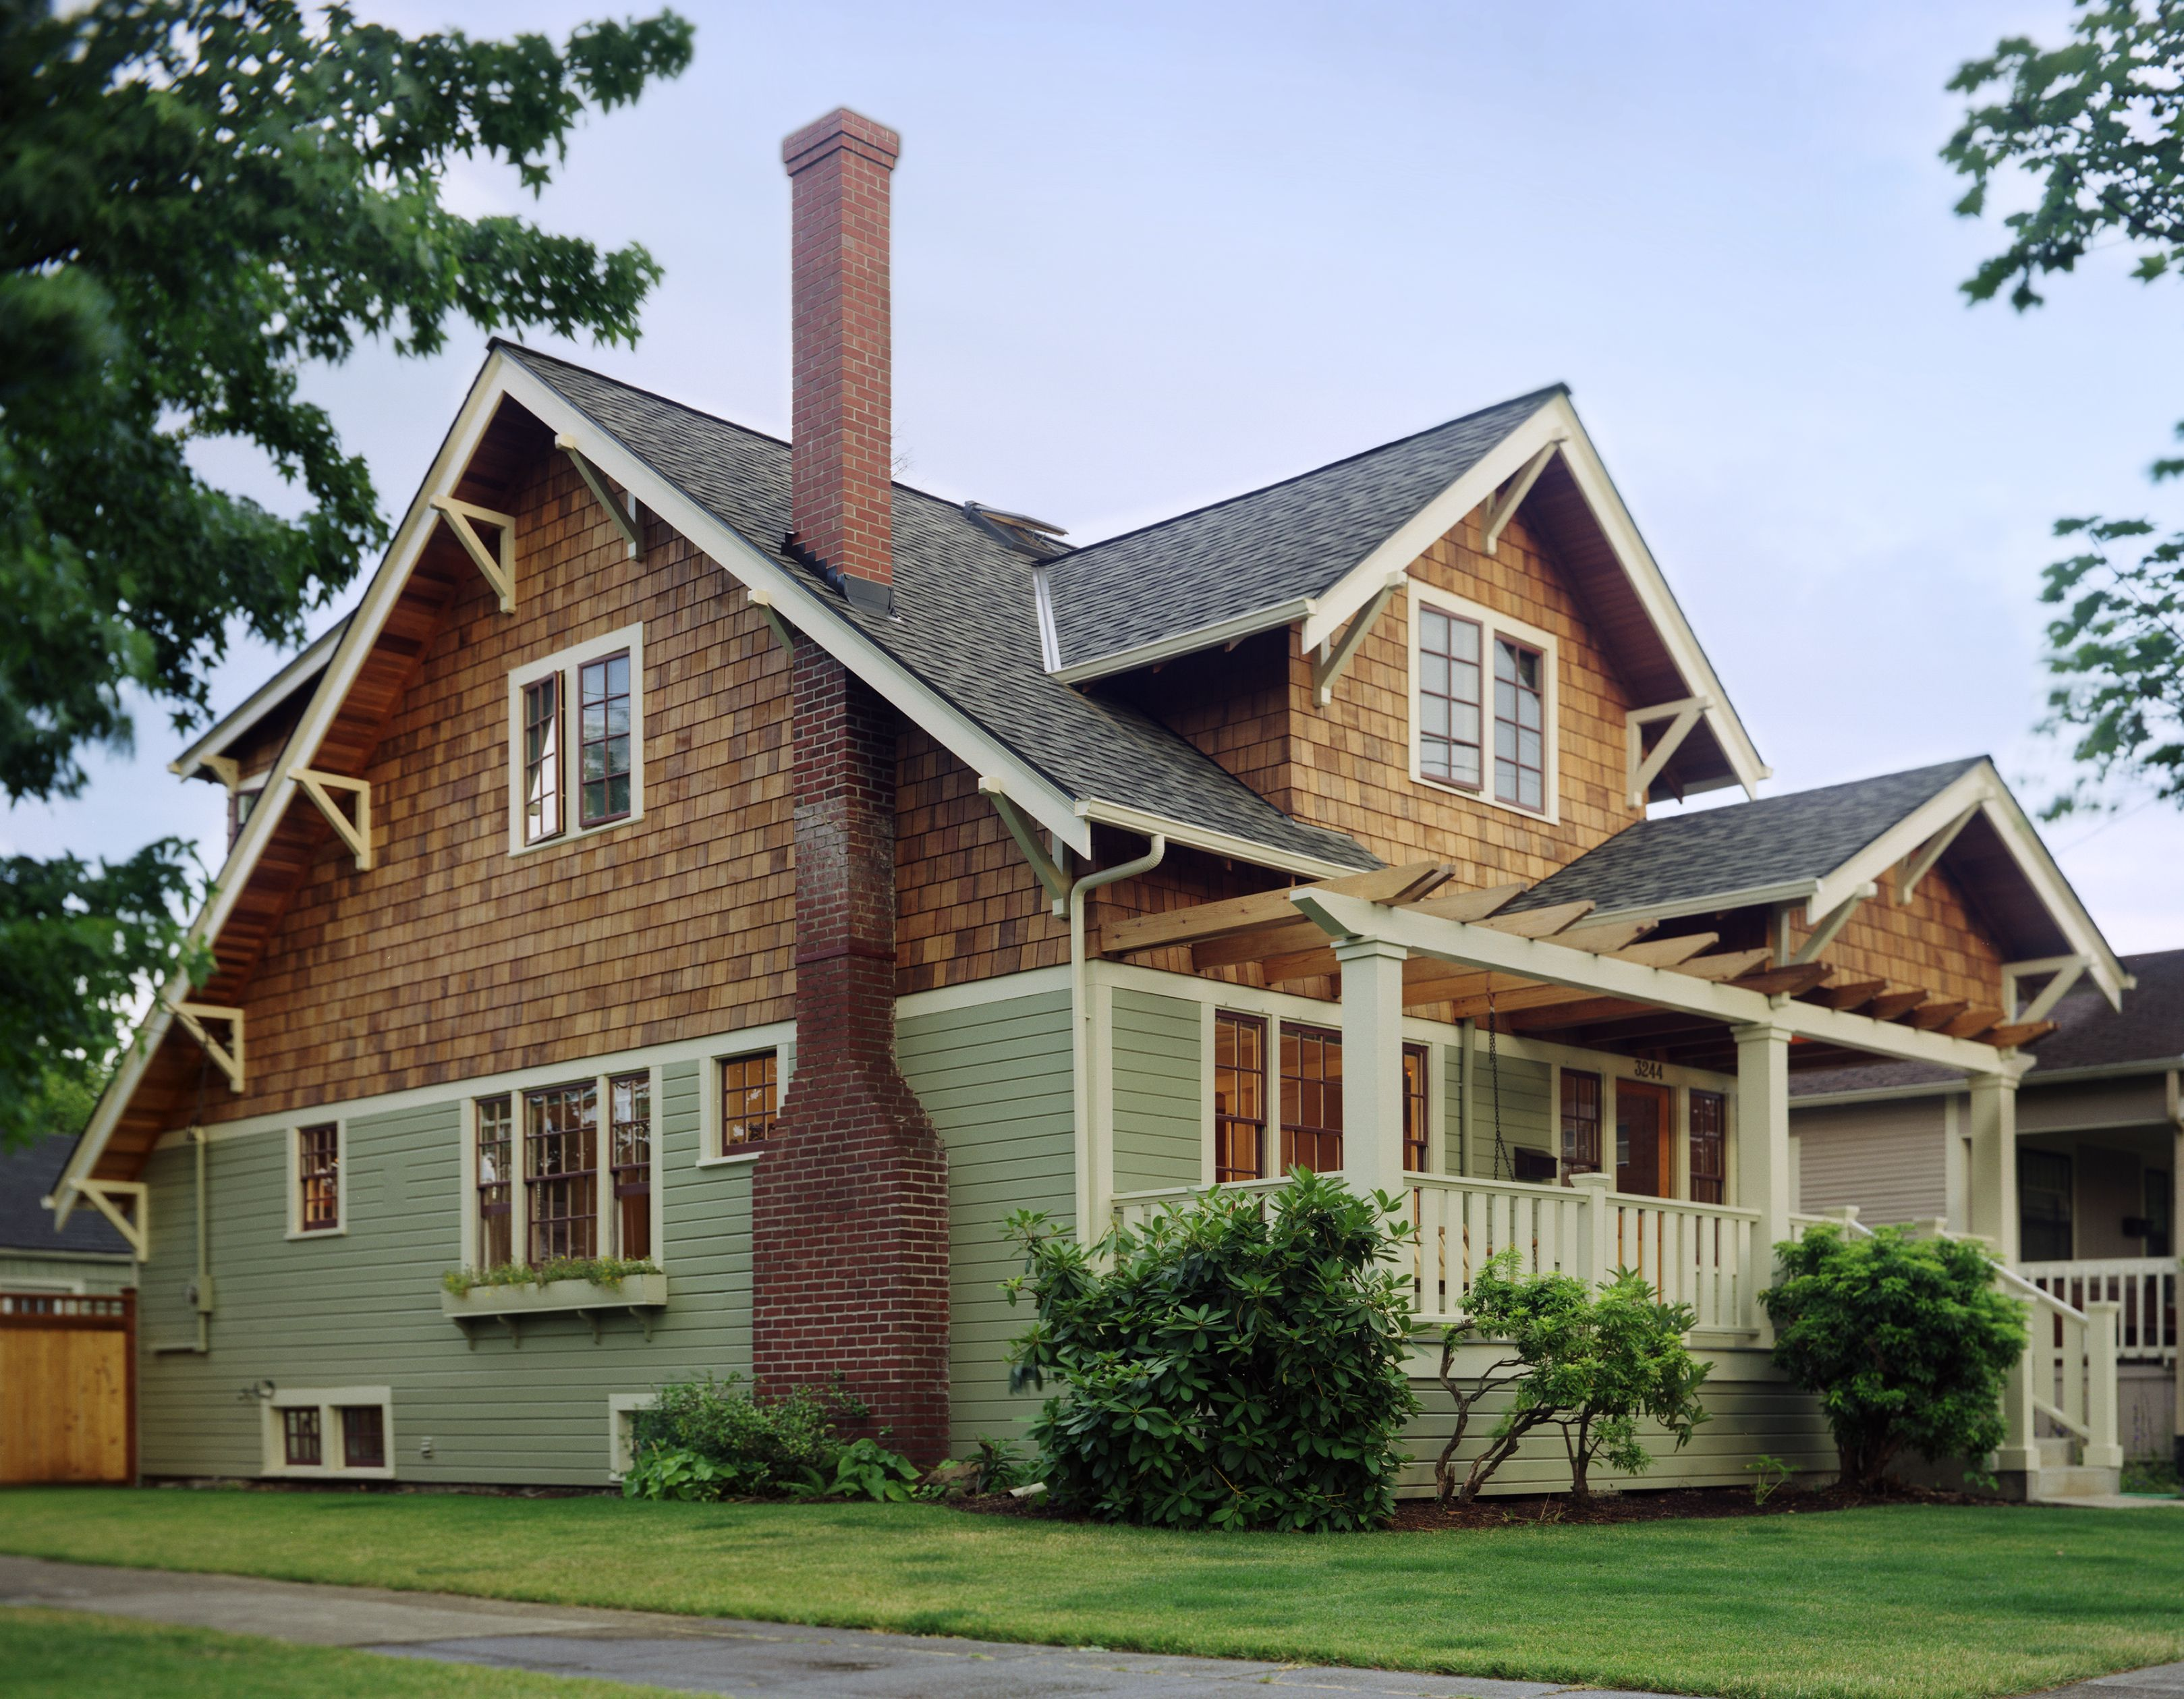 Pacific northwest architecture craftsman style house not for Craftsman home